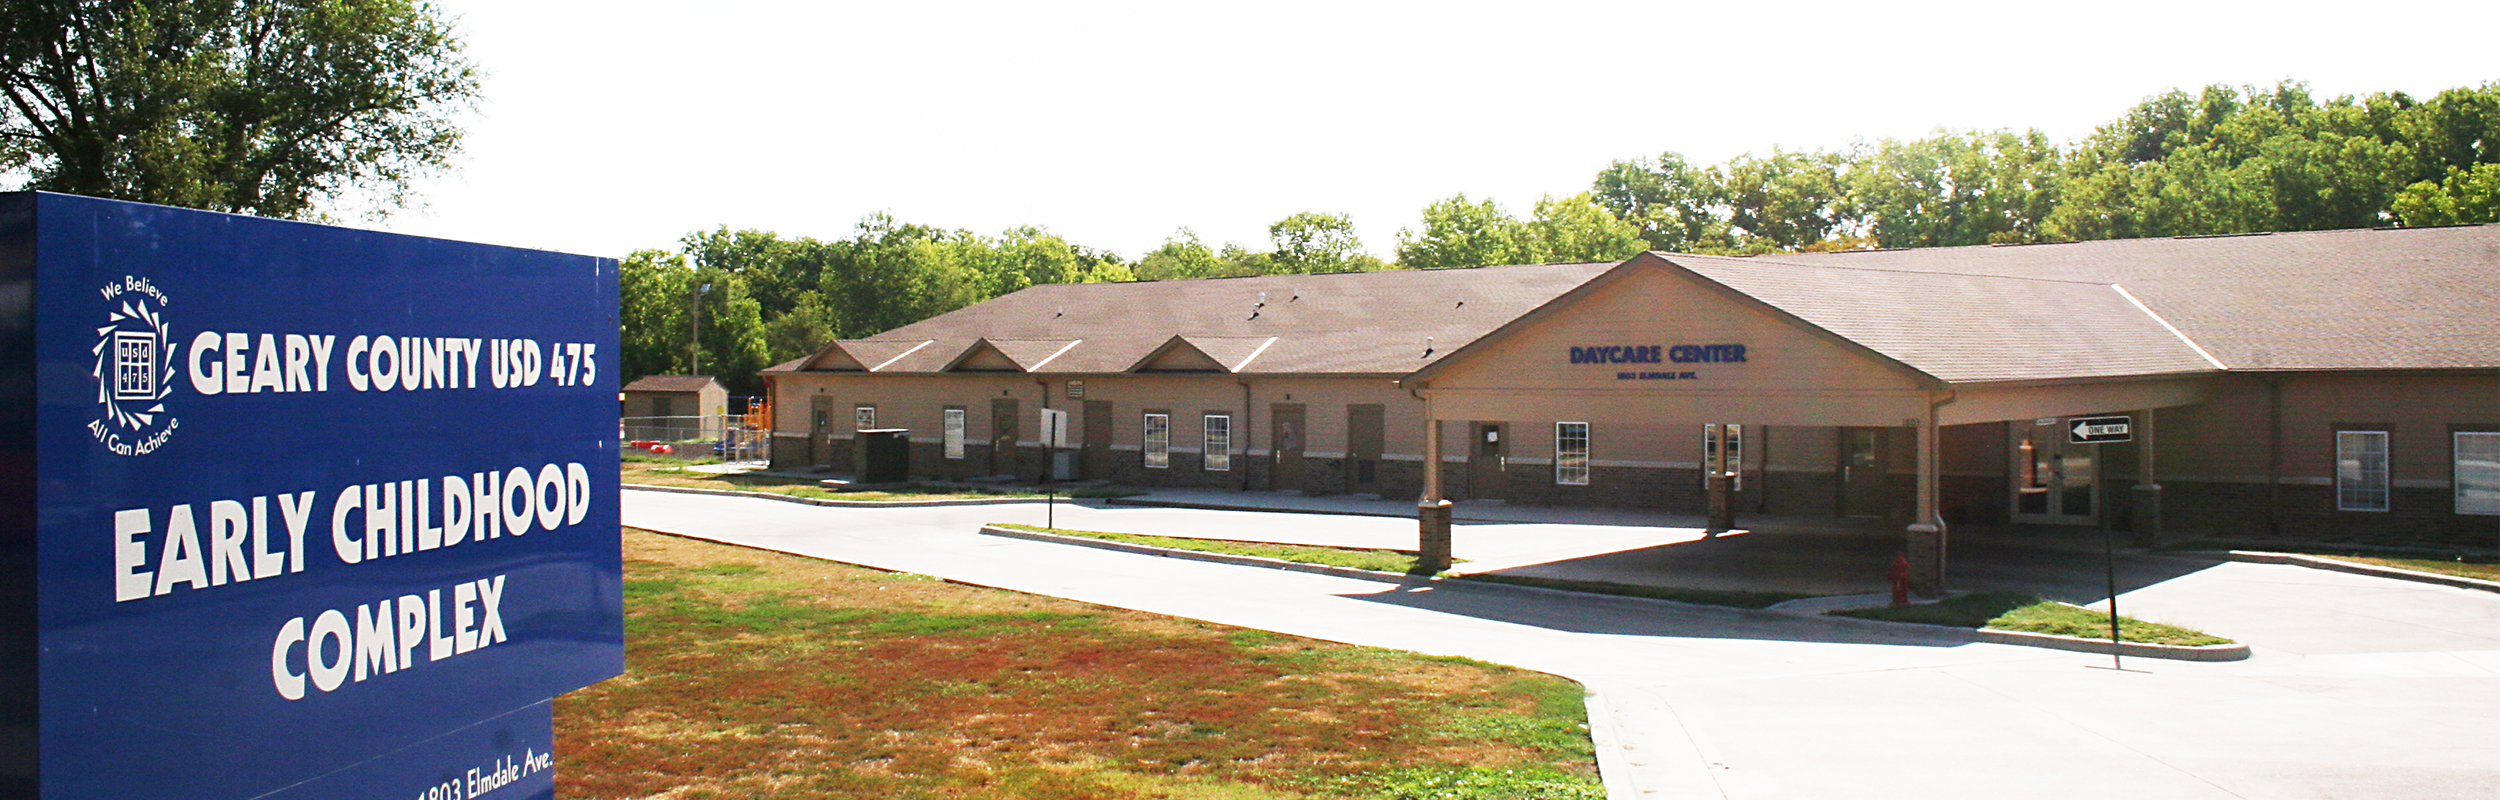 Early Childhood Center Building